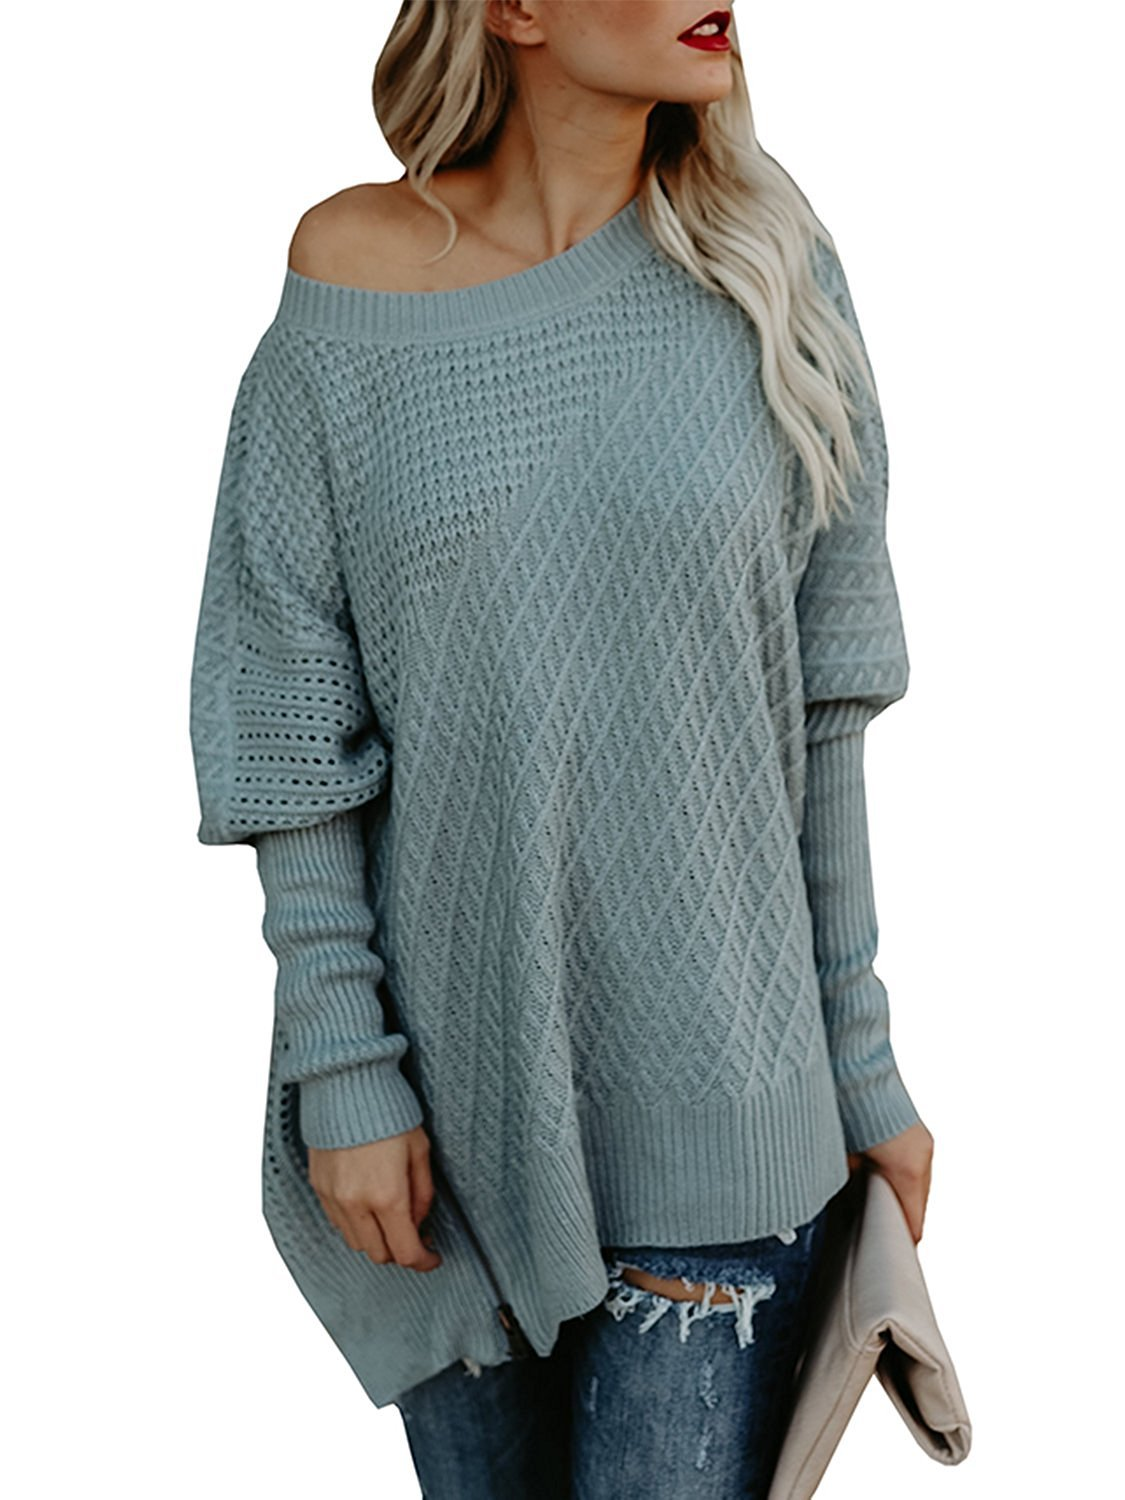 Chuanqi Womens Sweaters Oversized Batwing Pullover Sweater Loose Off The Shoulder Knit Jumper